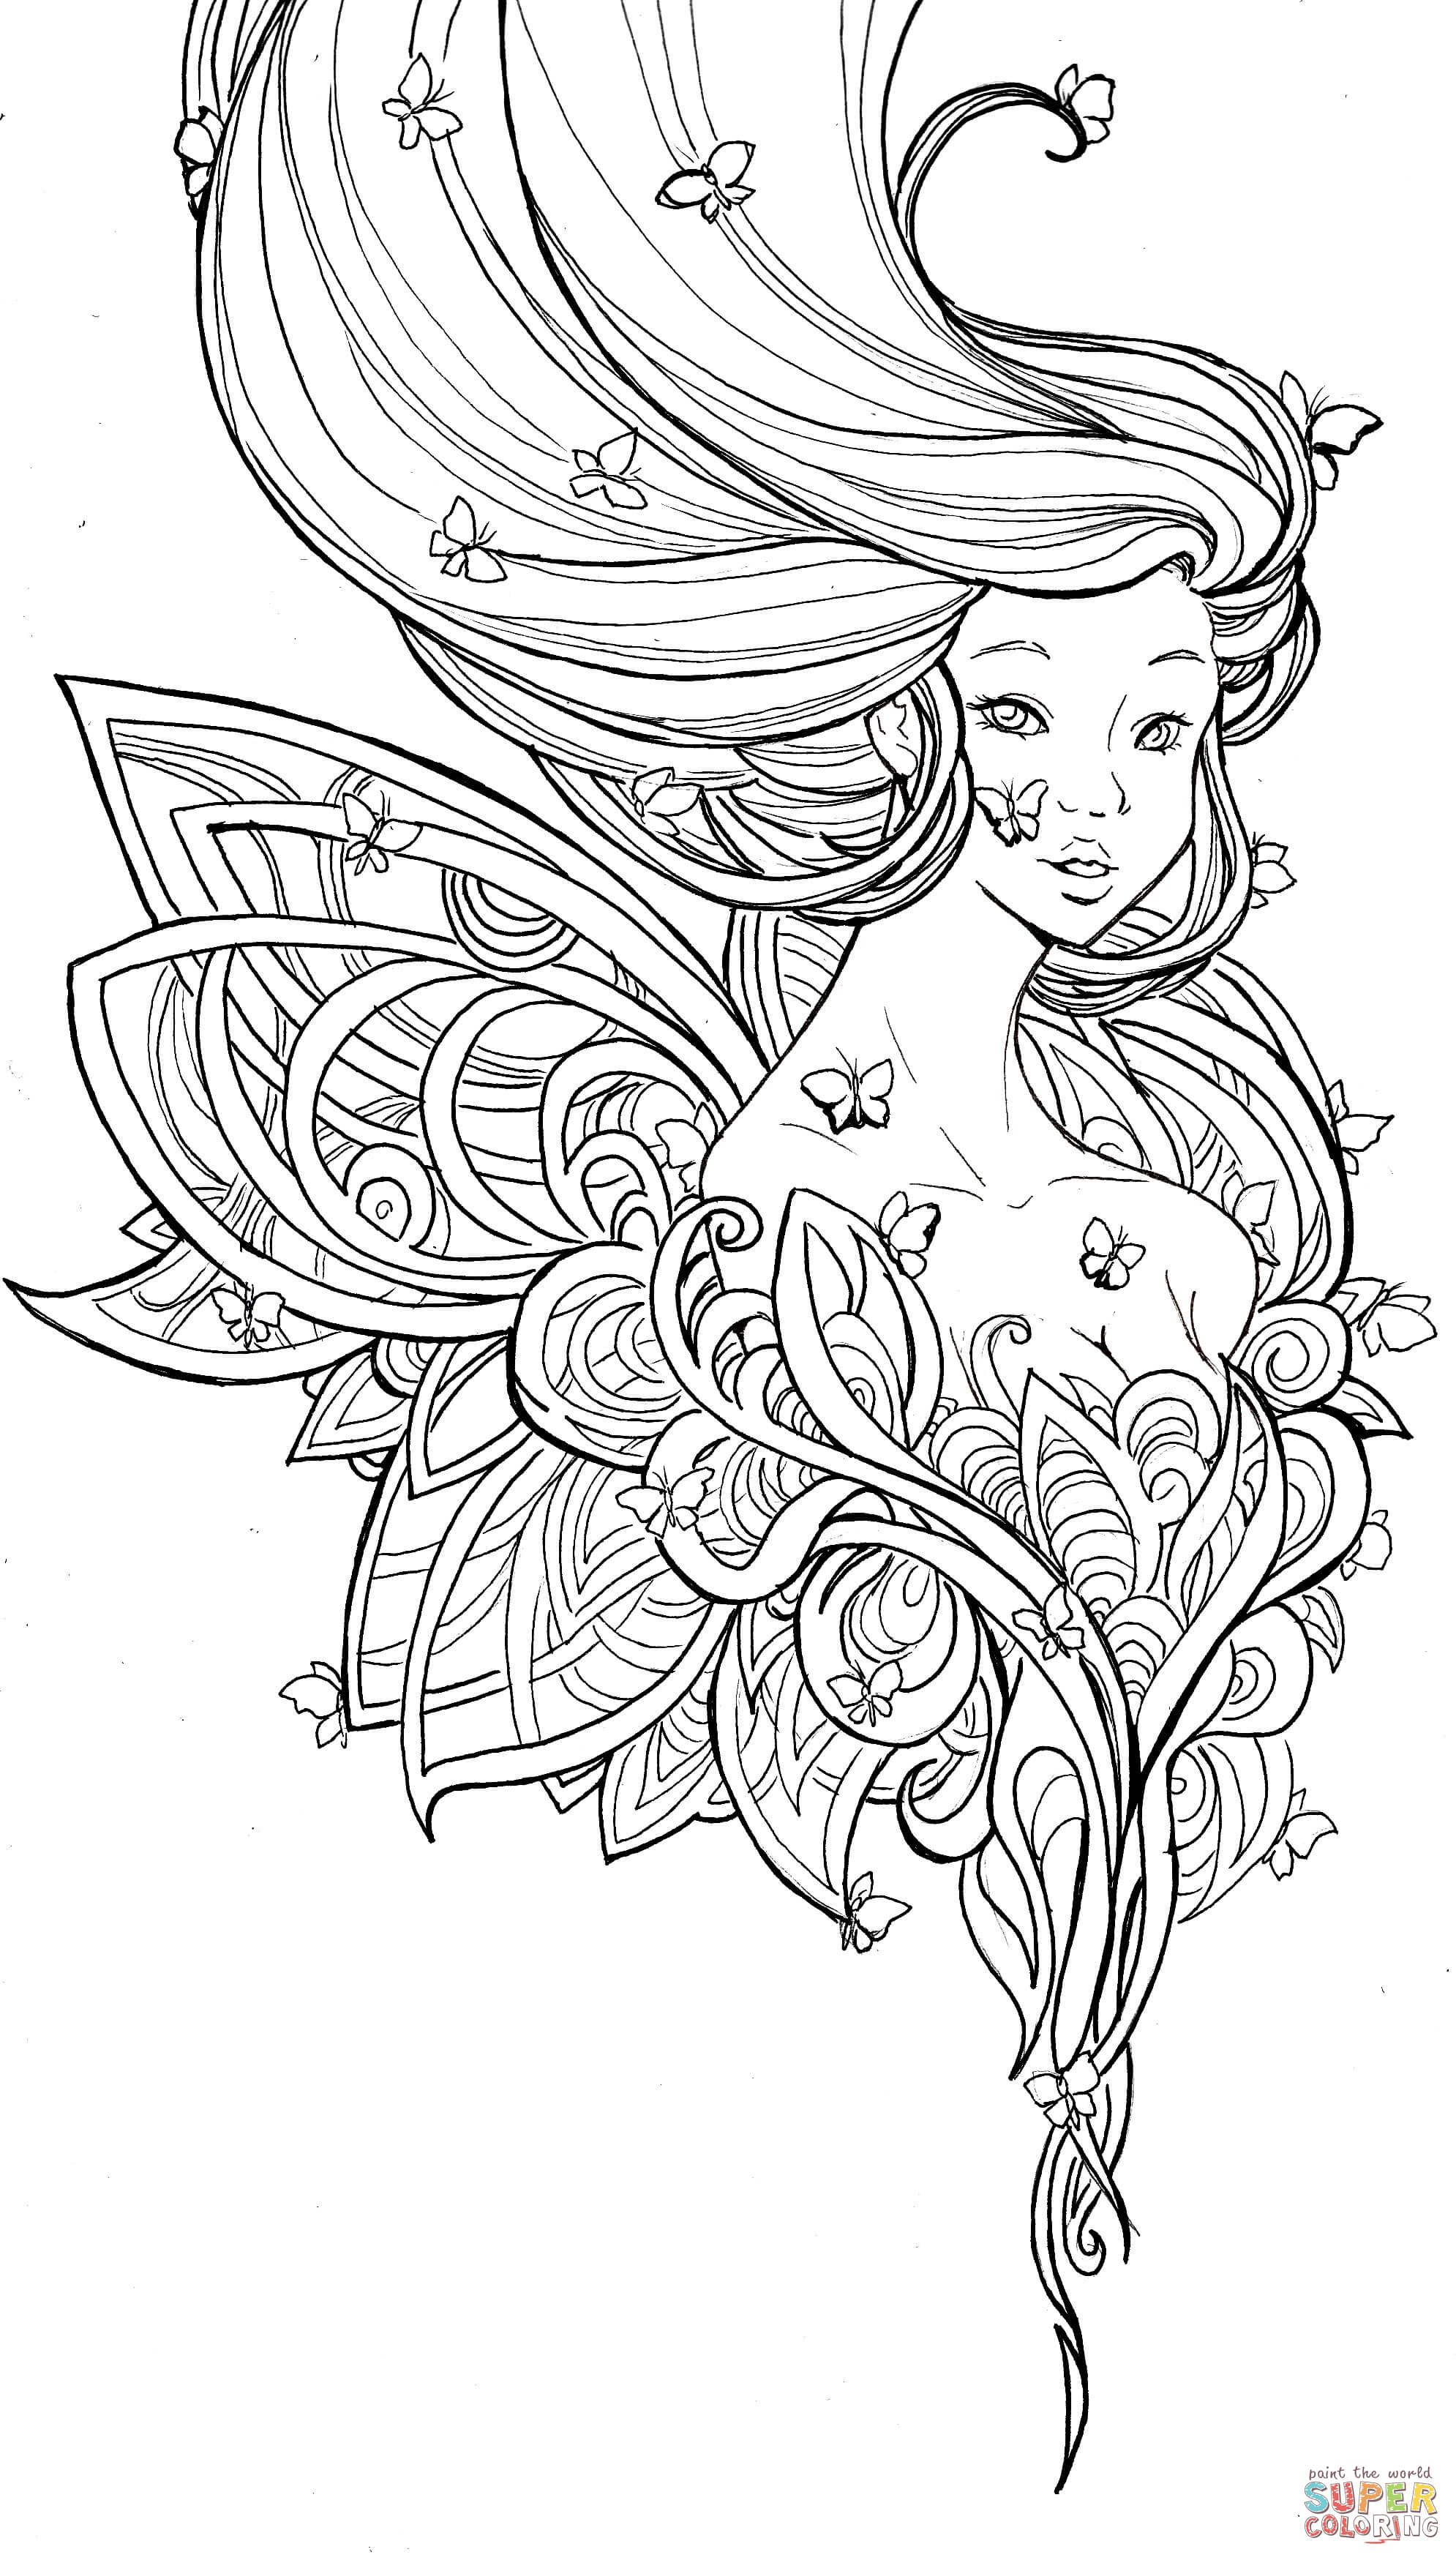 metamorphosis by namtia coloring page from anime girls